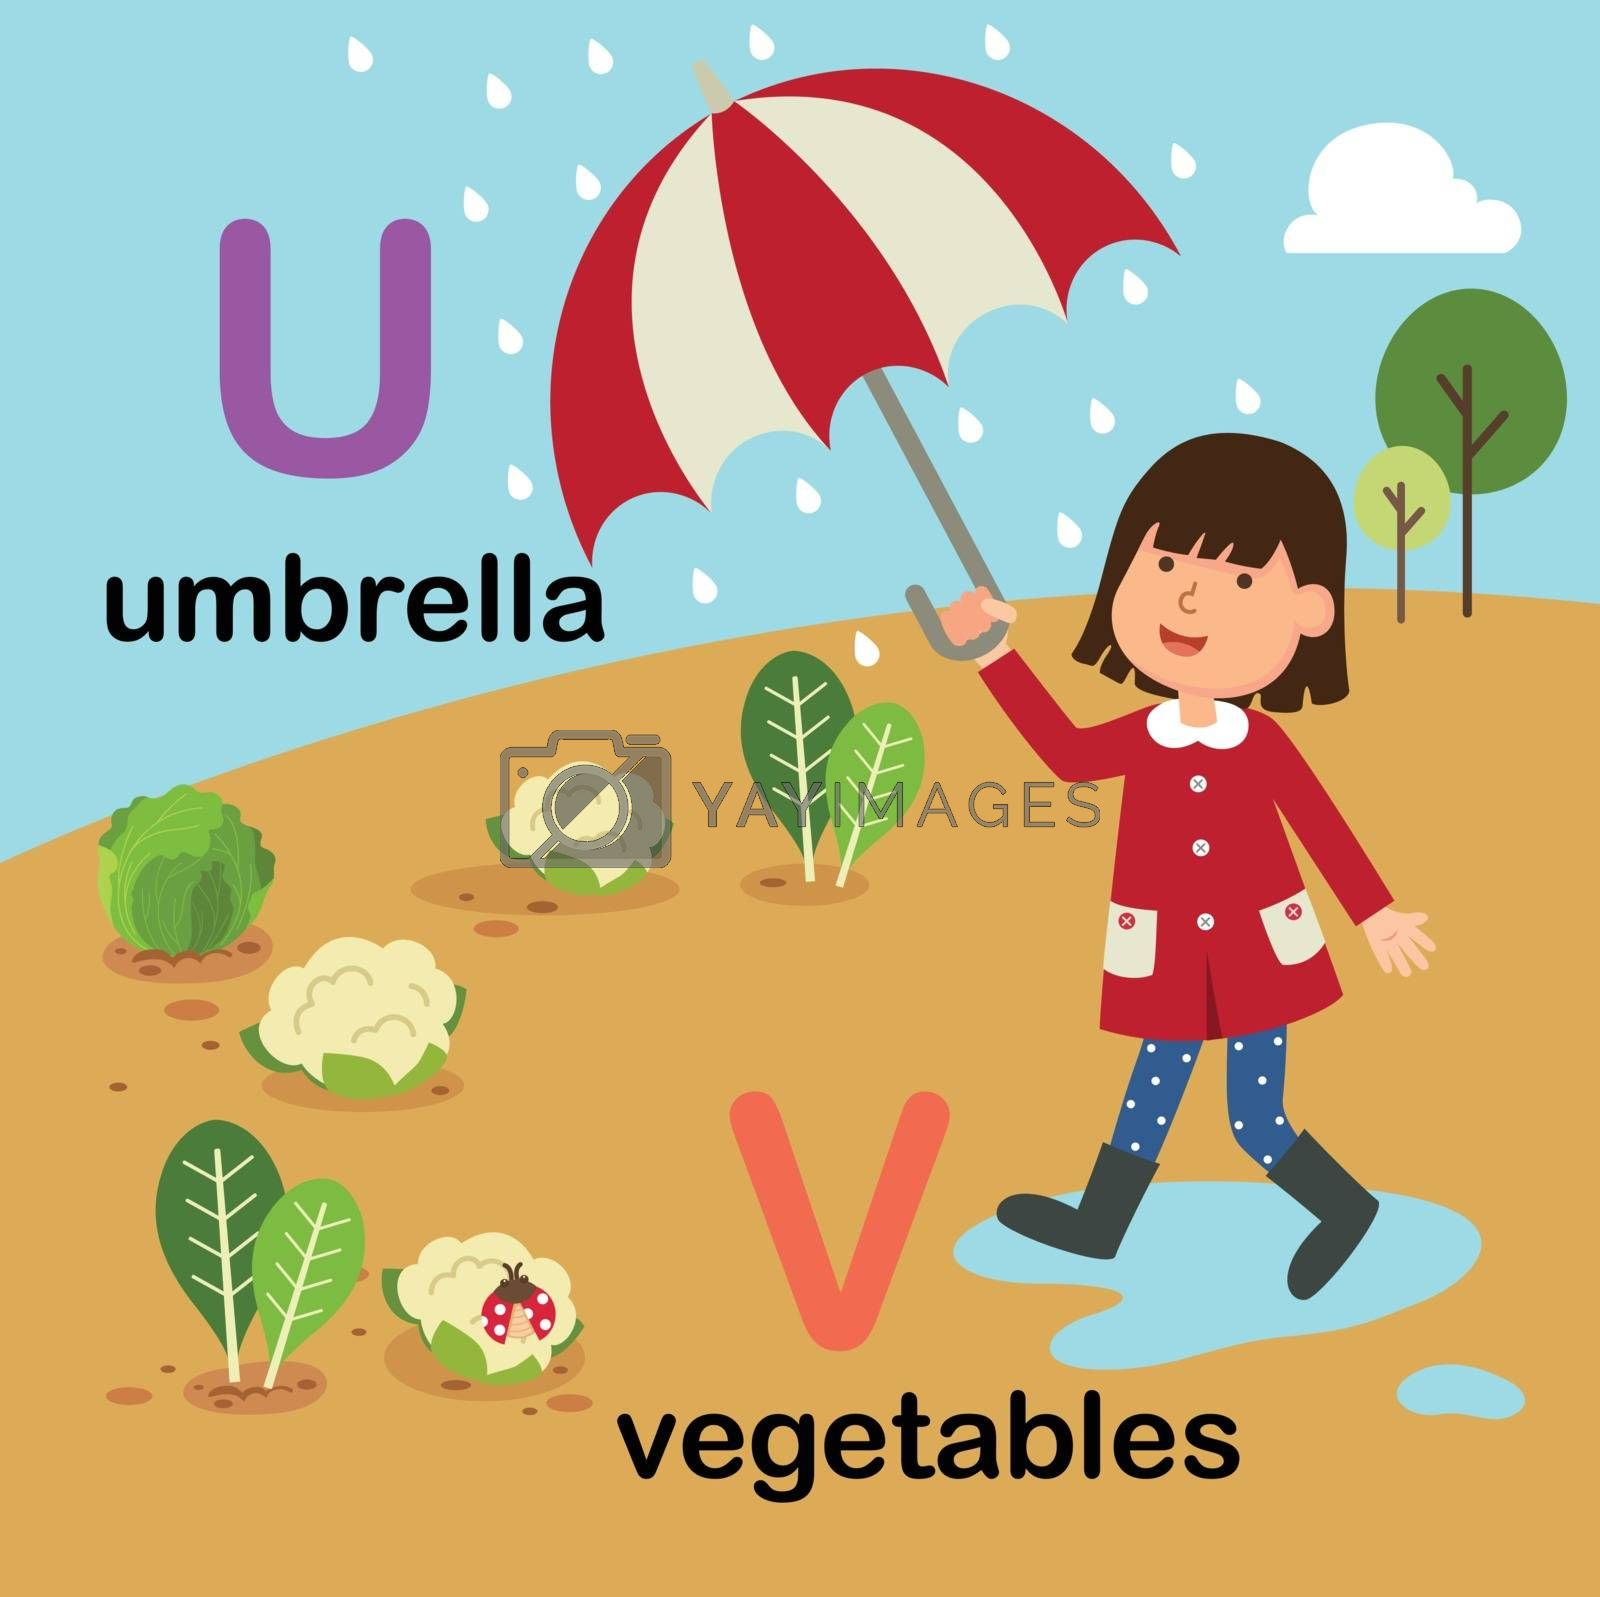 Alphabet Letter U-umbrella,V-vegetables,vector illustration